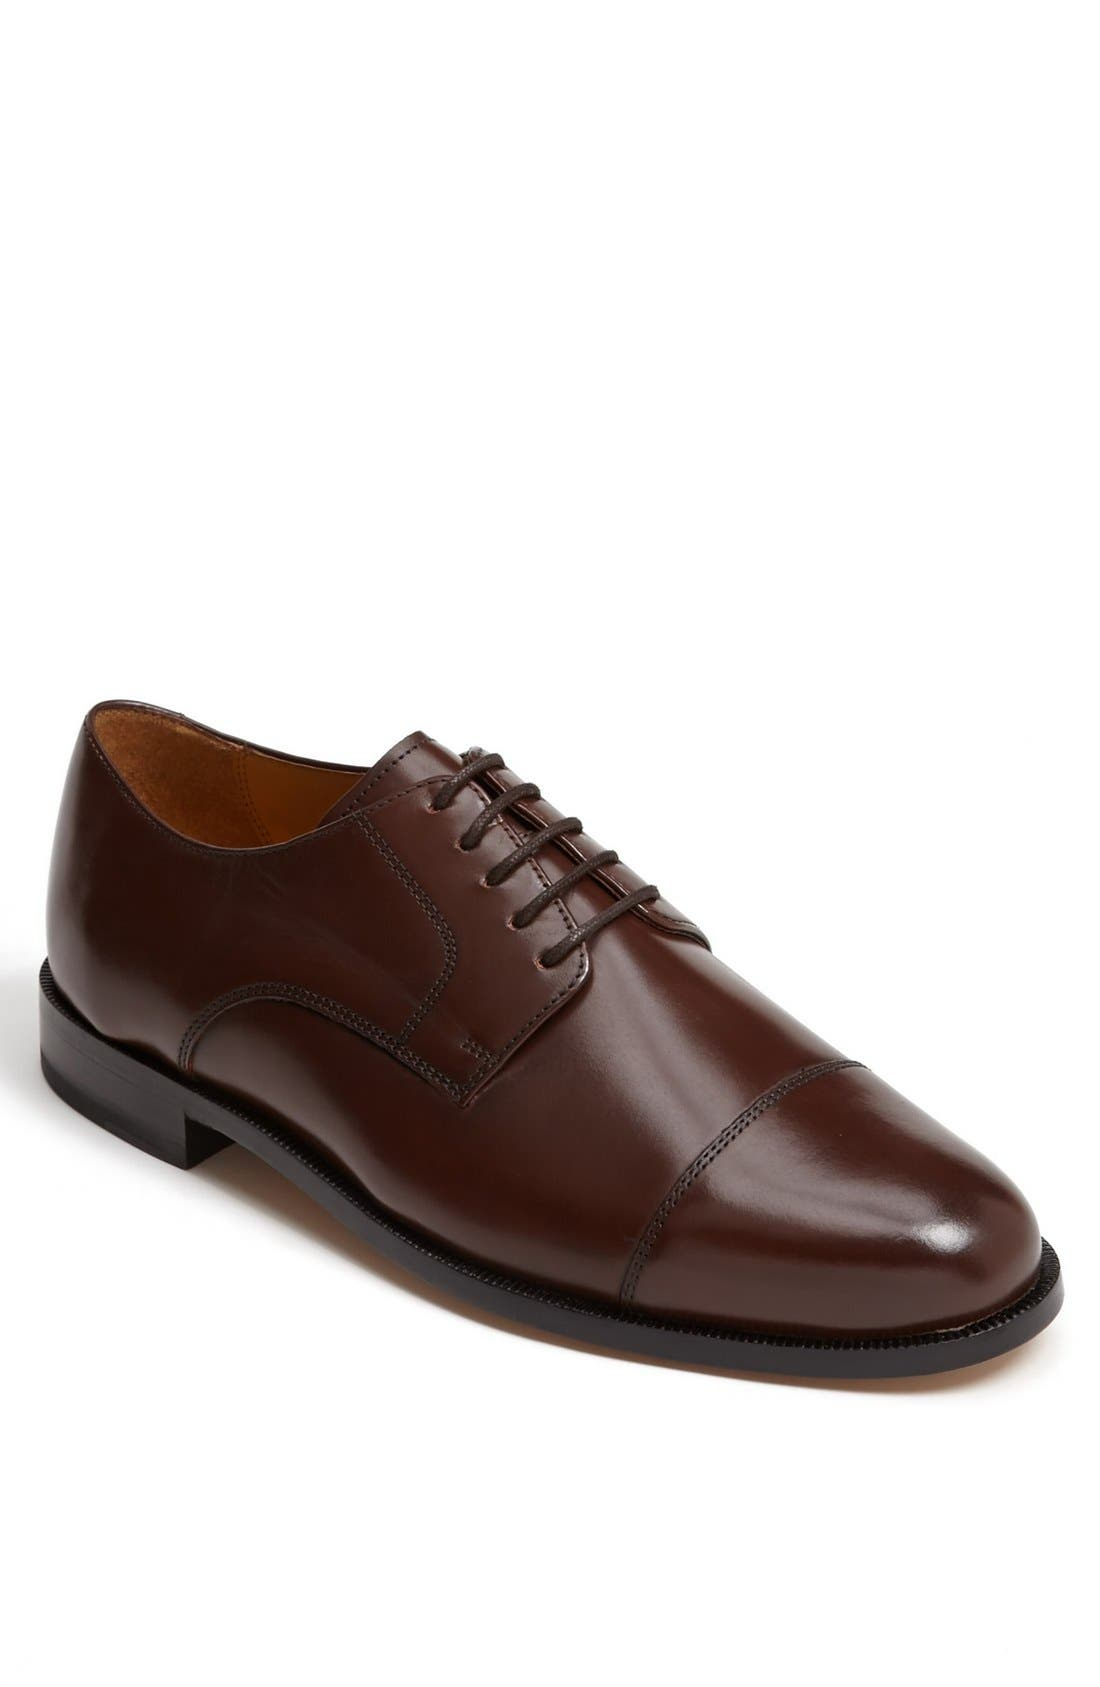 Alternate Image 1 Selected - Cole Haan 'Cassady' Cap Toe Derby   (Men)